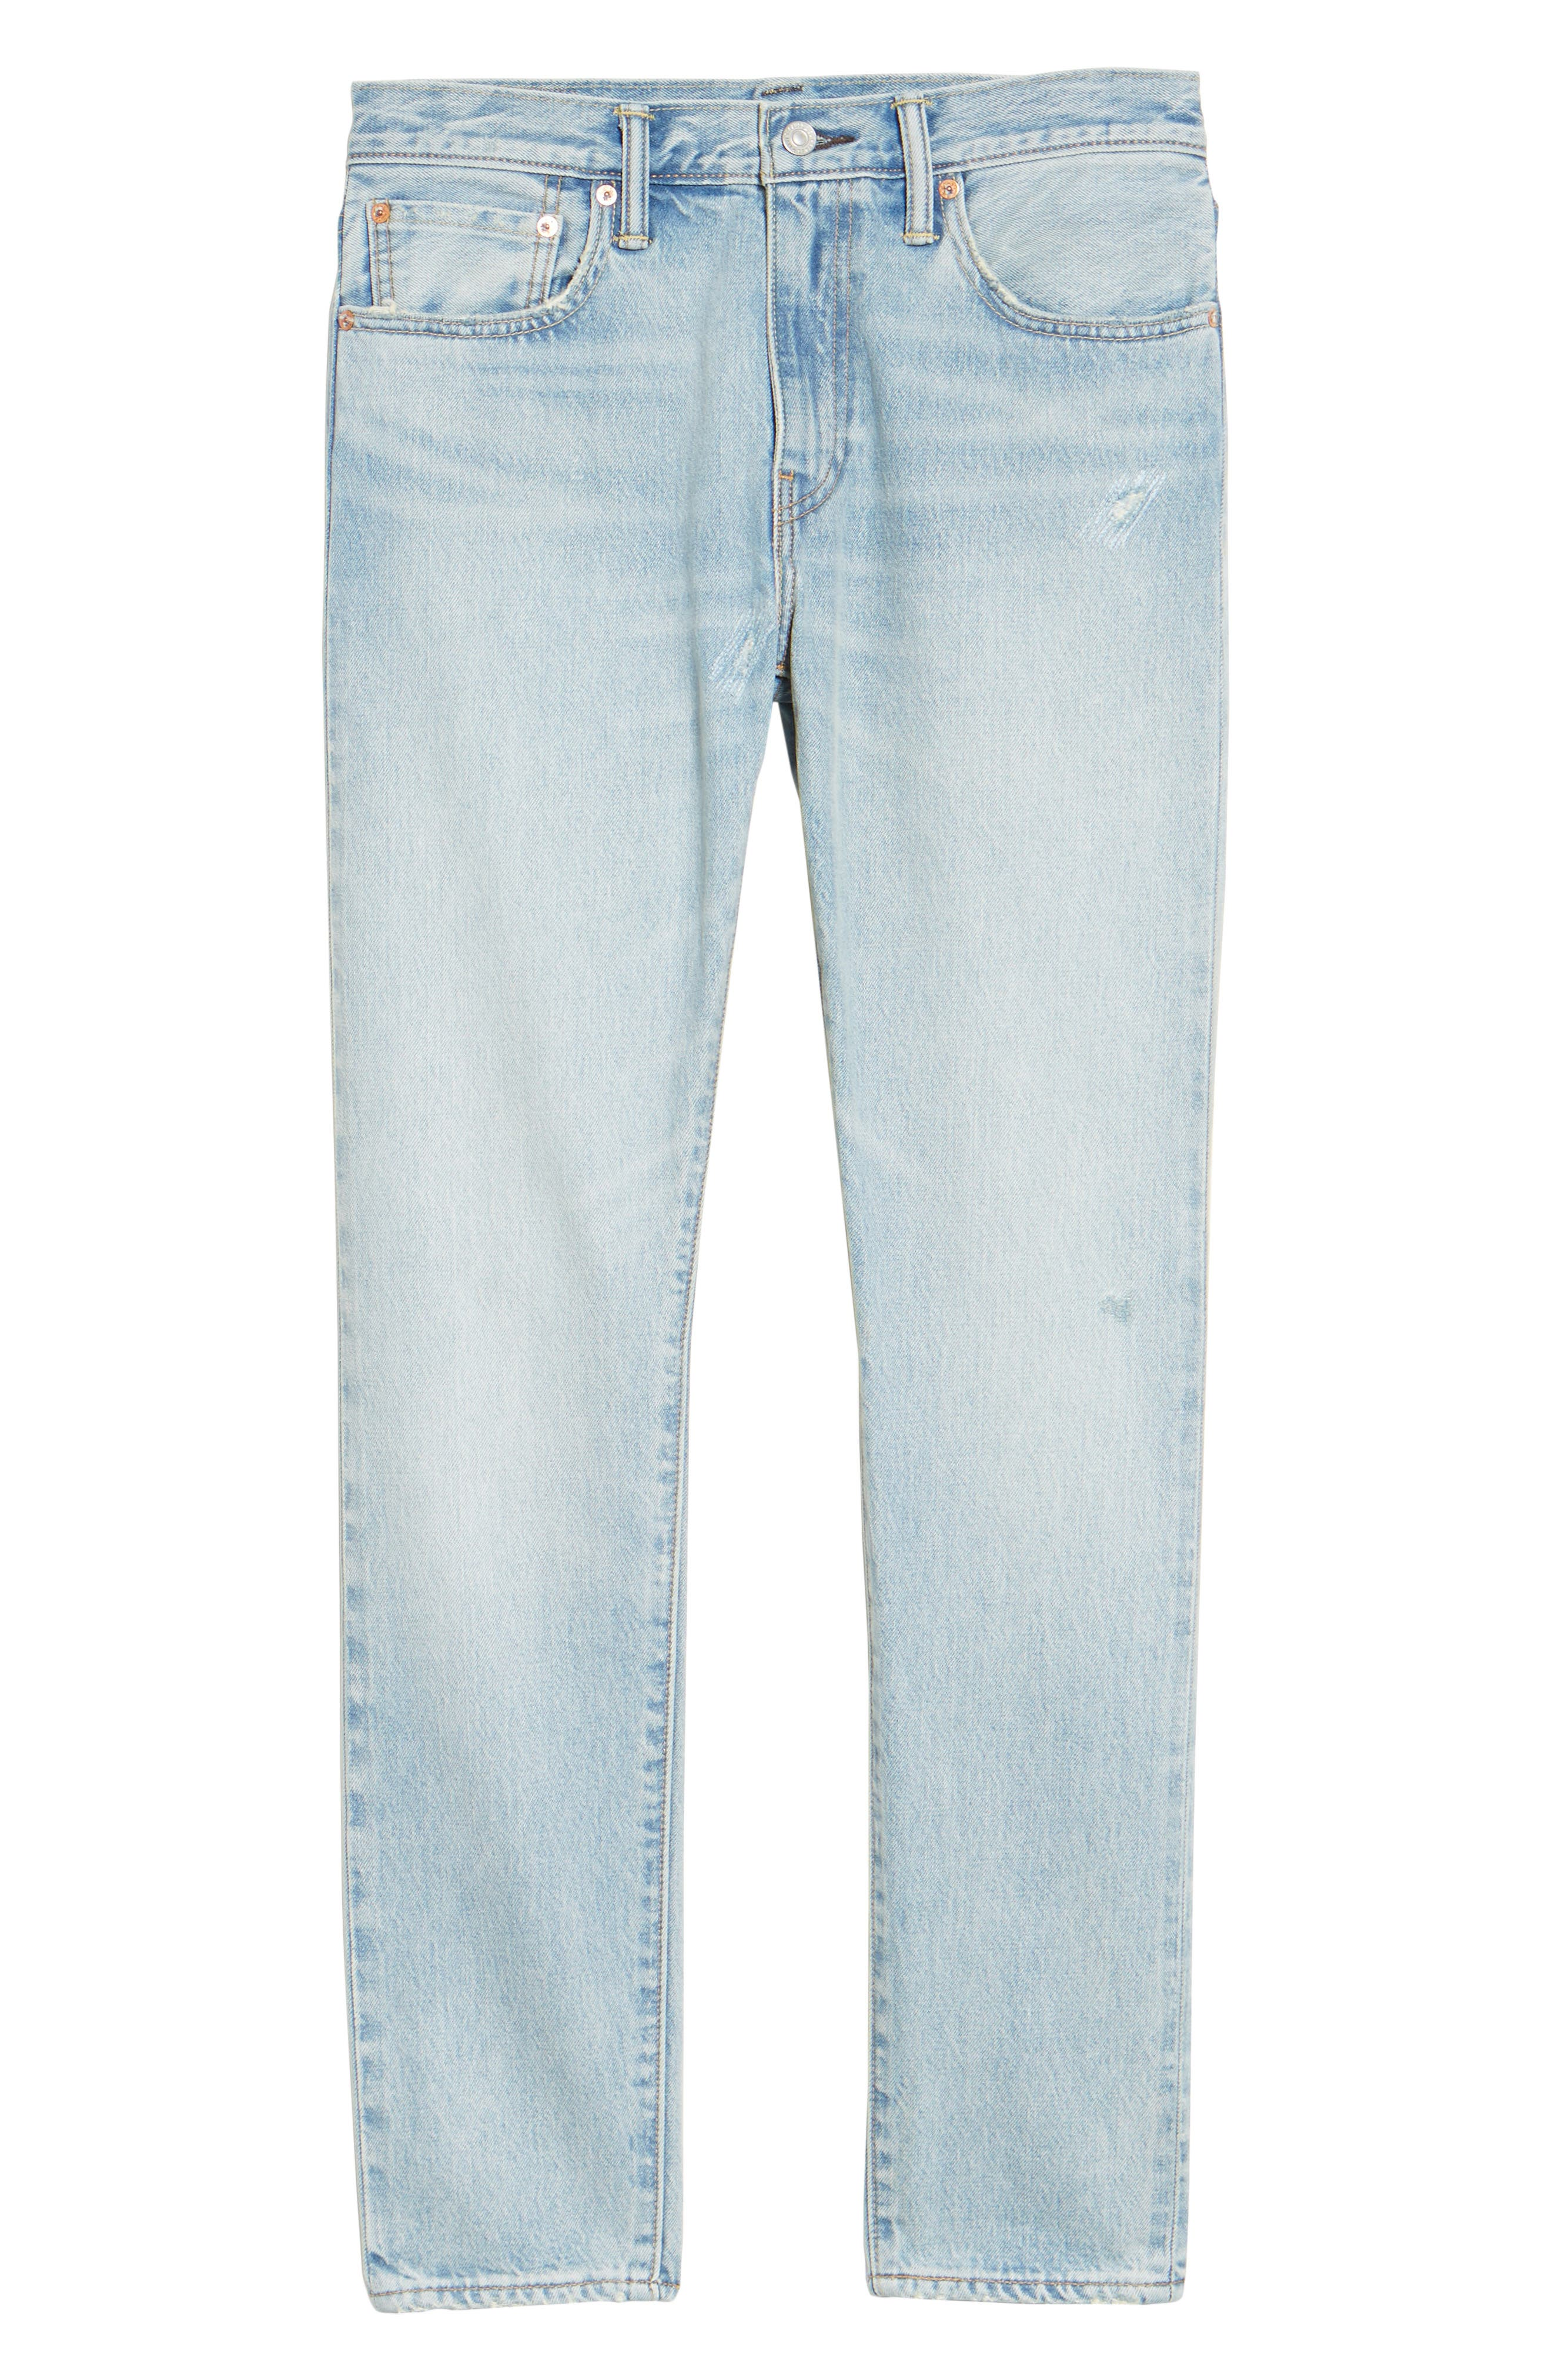 512<sup>™</sup> Skinny Fit Crop Jeans,                             Alternate thumbnail 6, color,                             421